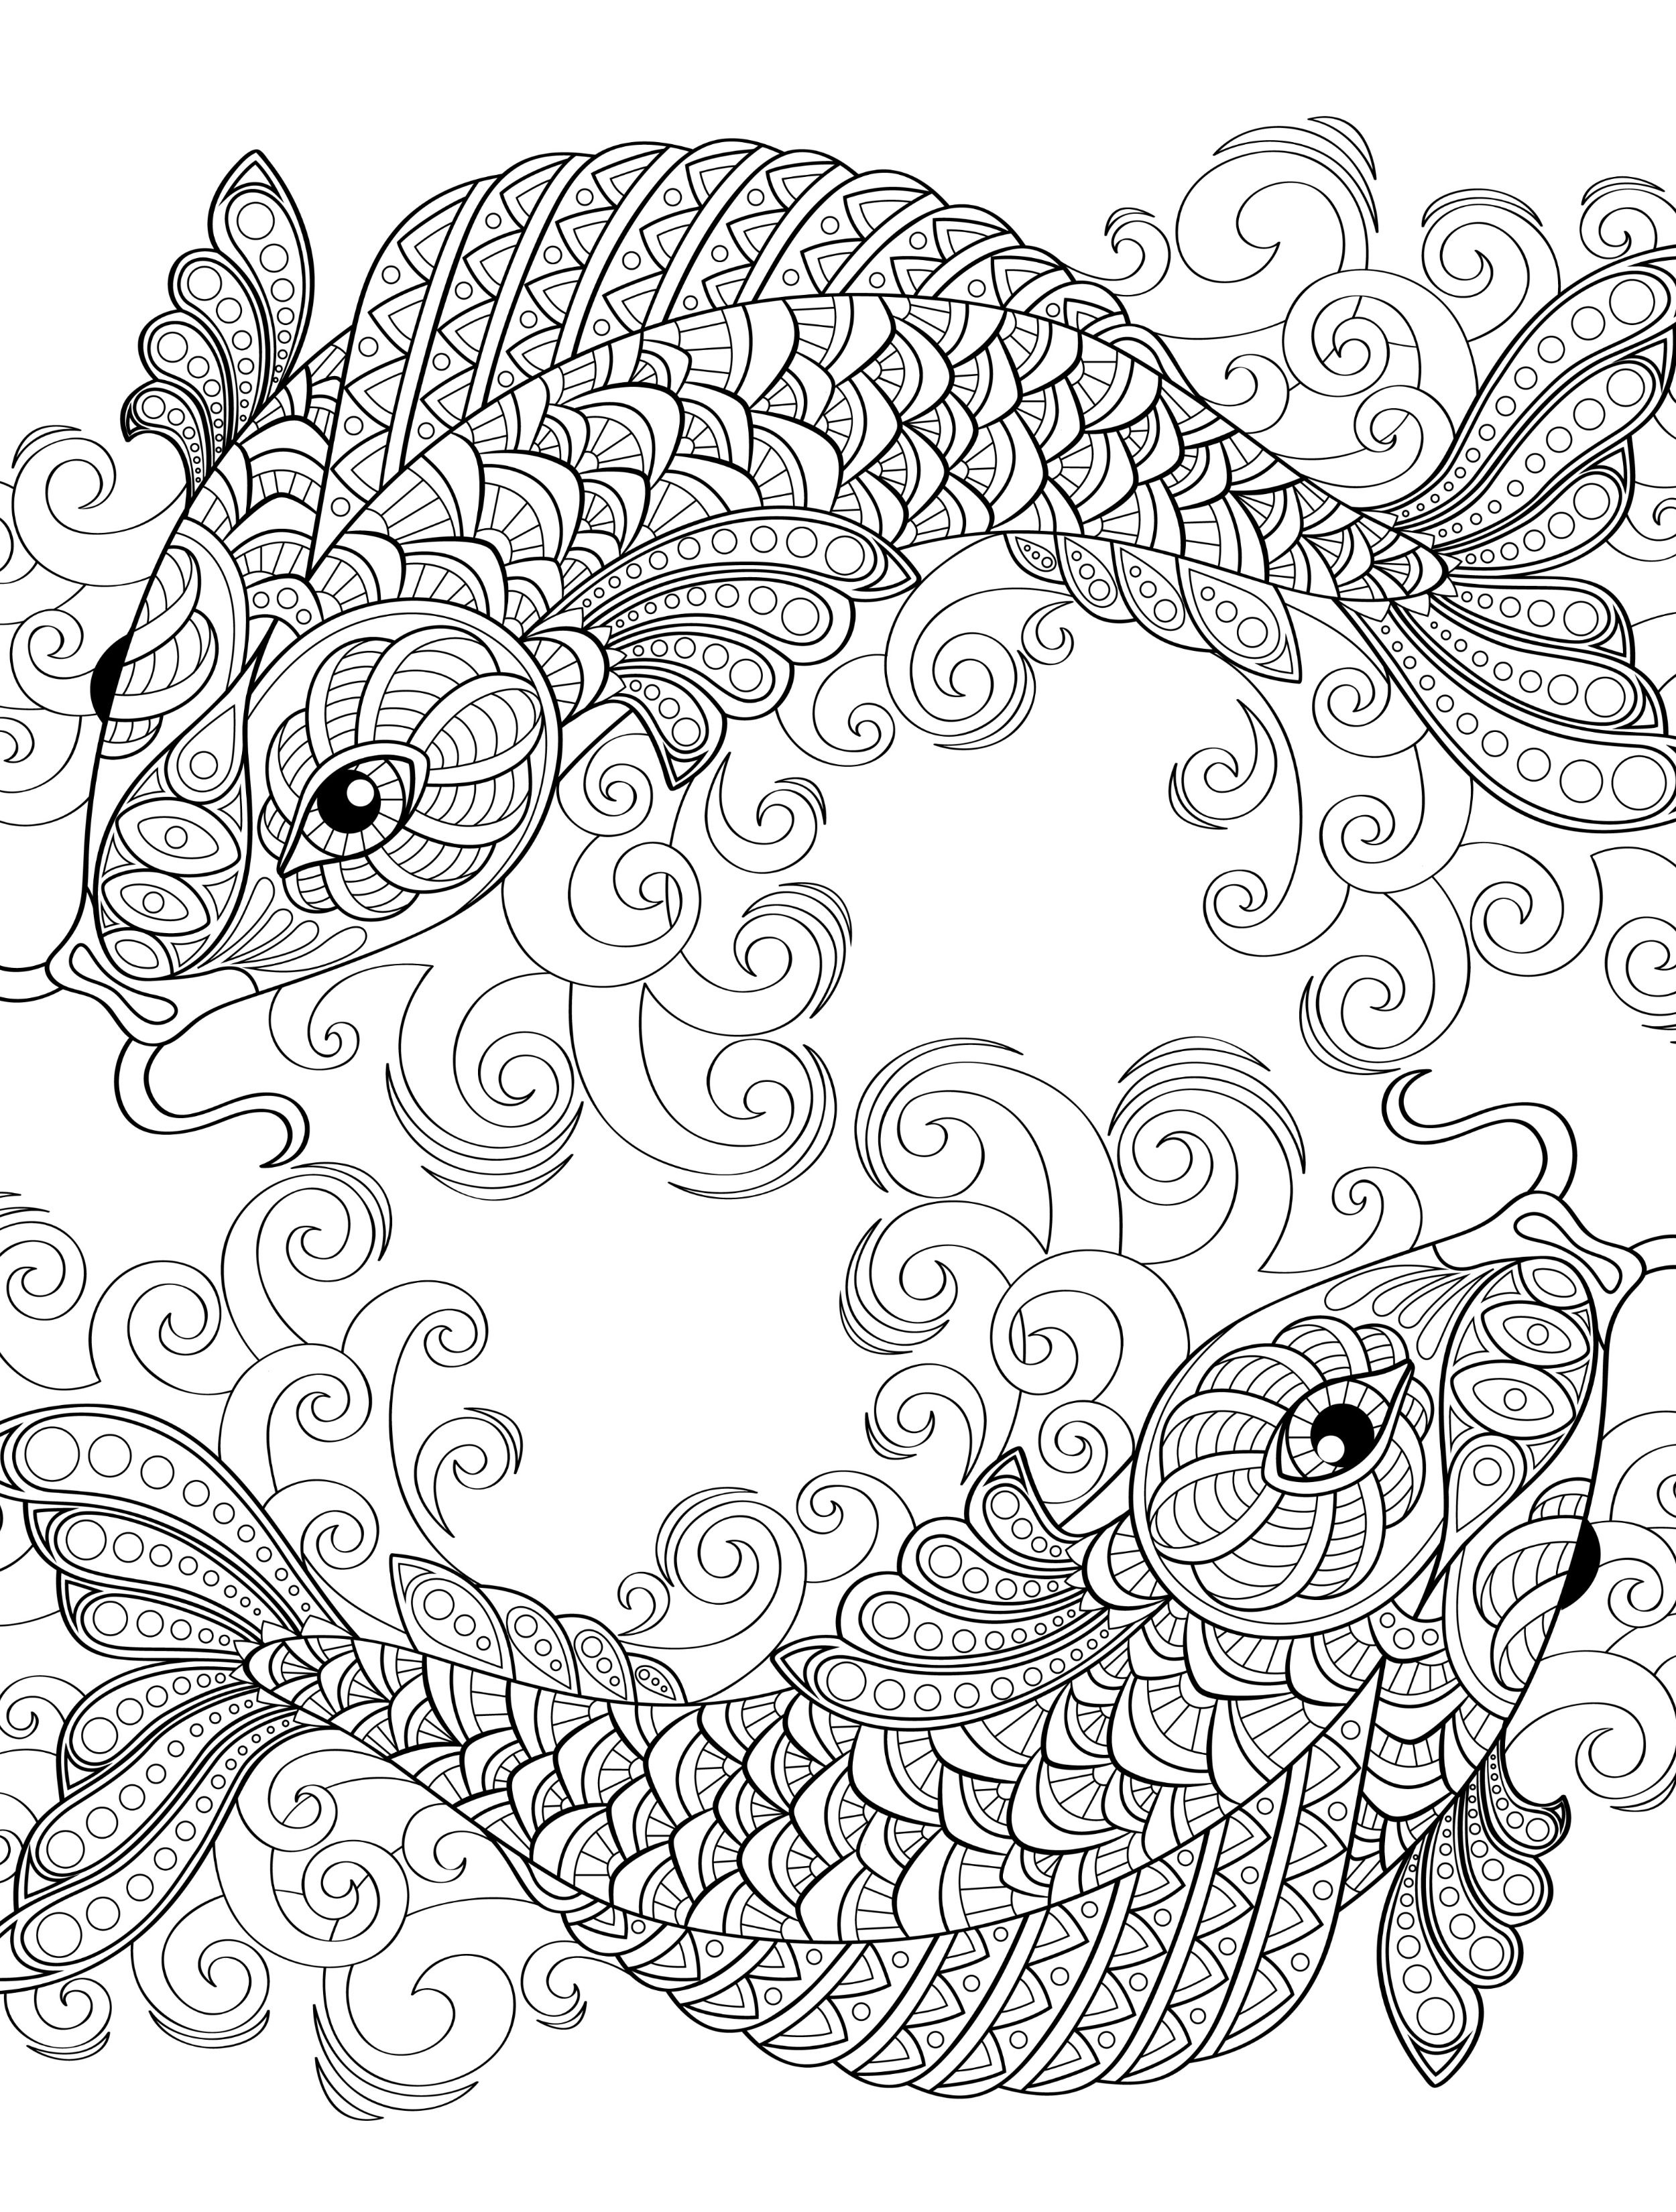 18 Absurdly Whimsical Adult Coloring Pages  Coloring -9001